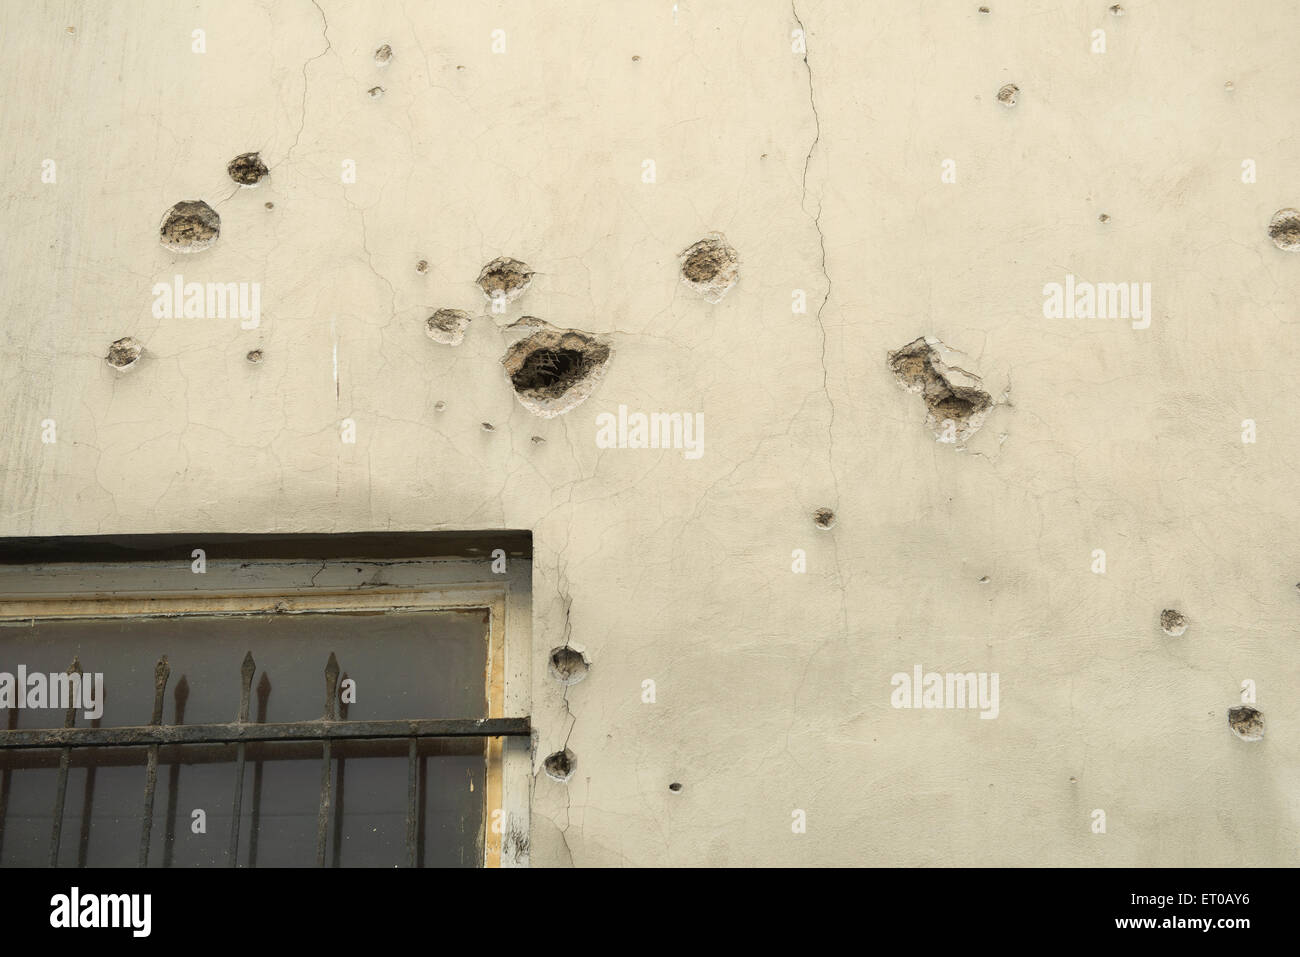 Signs of war in Sarajevo - Stock Image